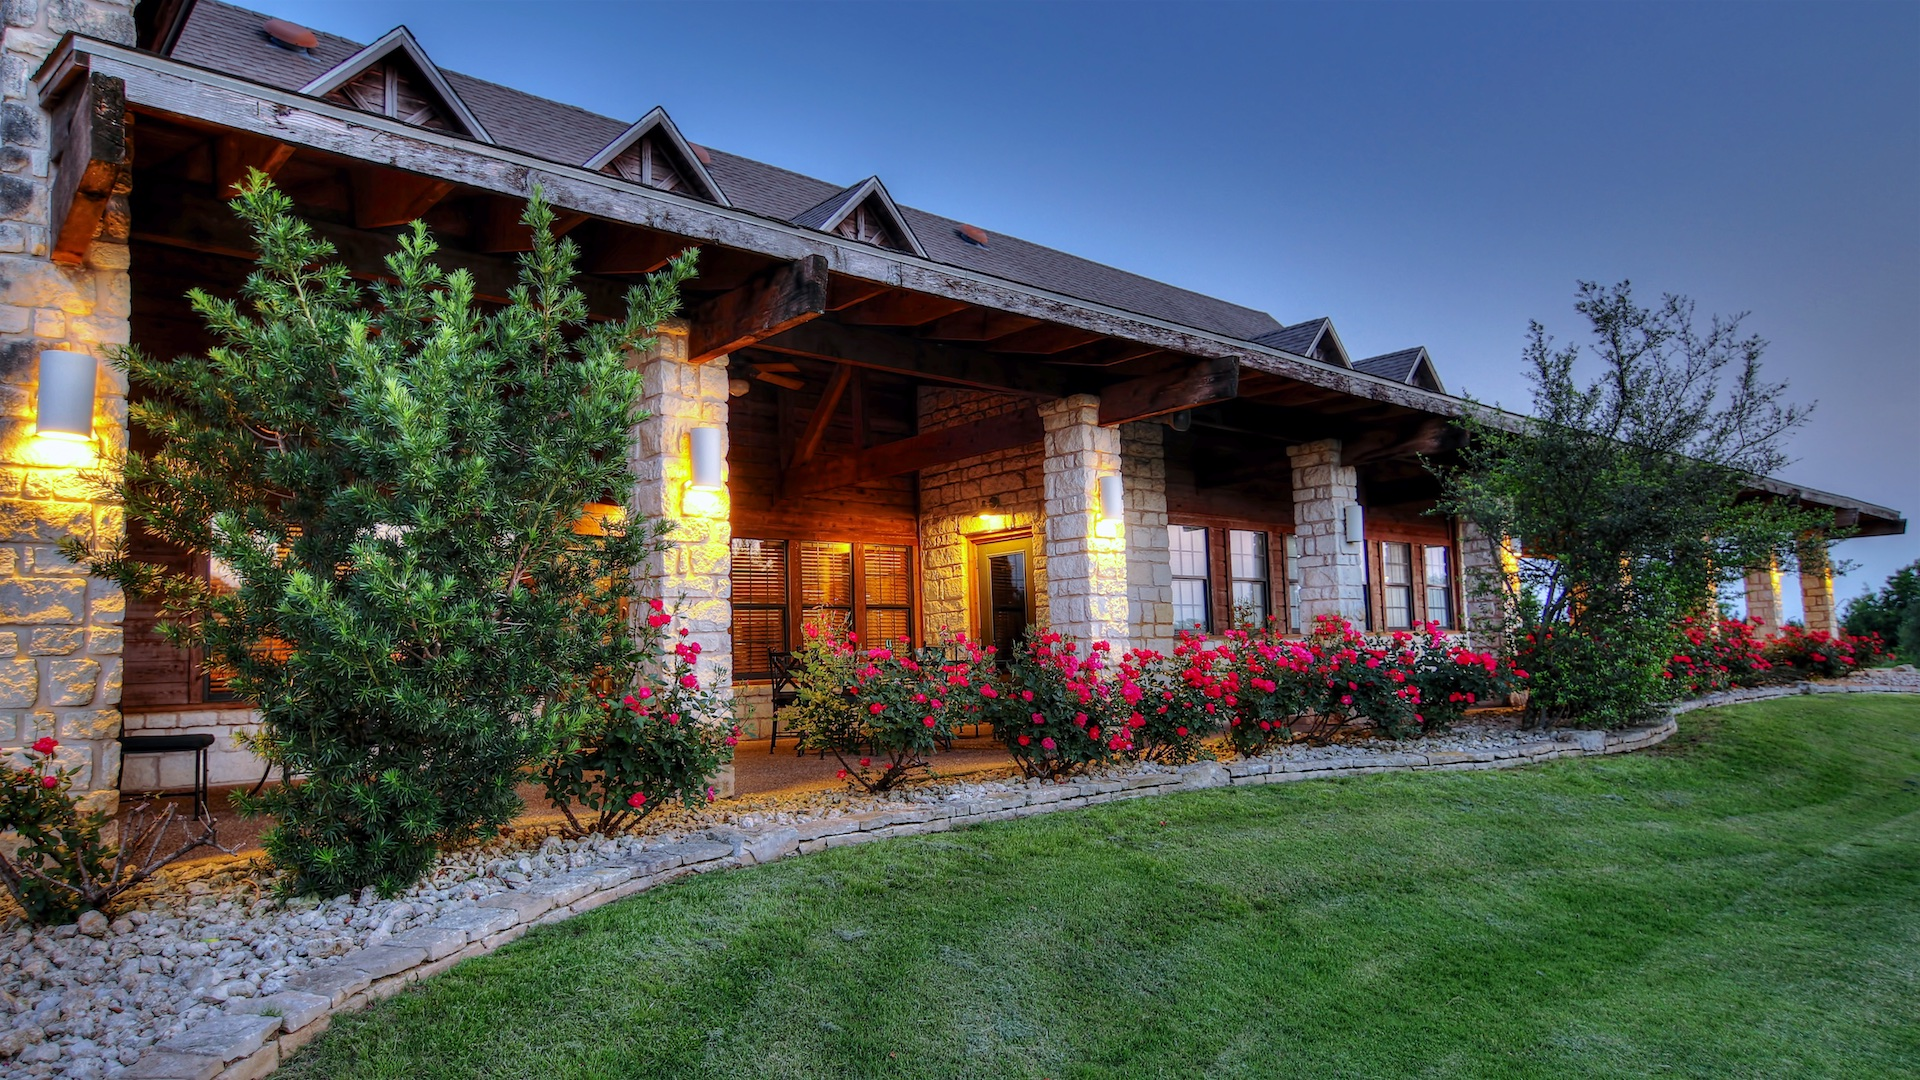 Photo of a golf clubhouse